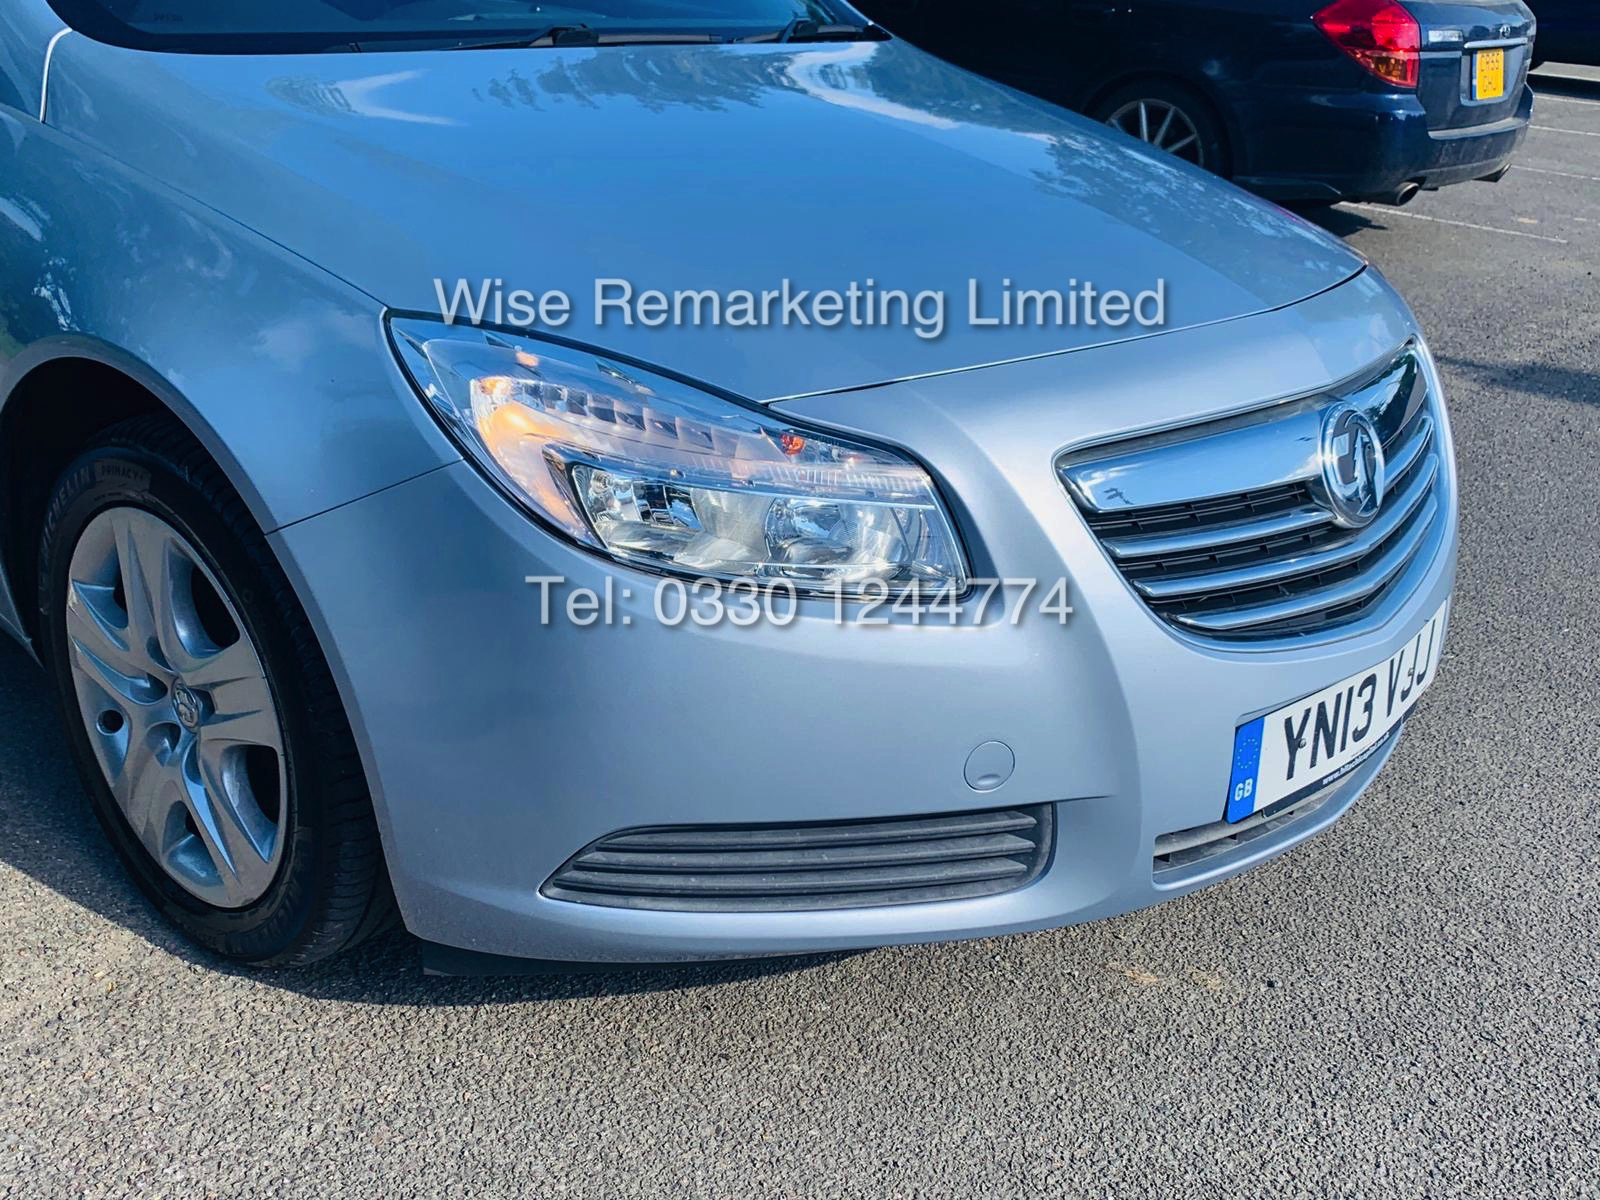 VAUXHALL INSIGNIA 2.0 CDTI ECOFLEX ES 2013 *FSH* 1 OWNER FROM NEW - Image 11 of 30